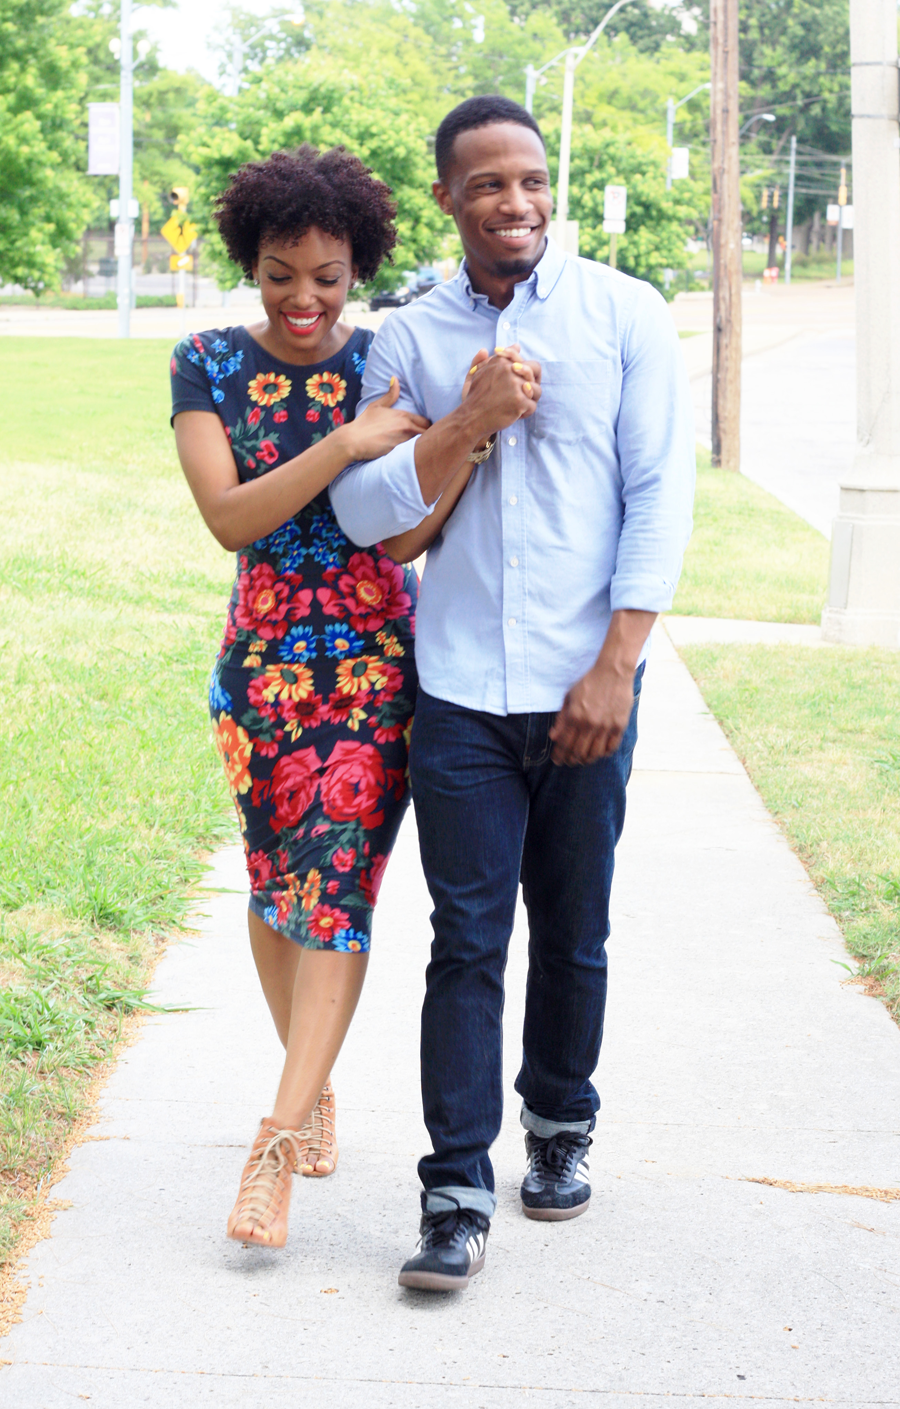 simple-engagement-photo-tips